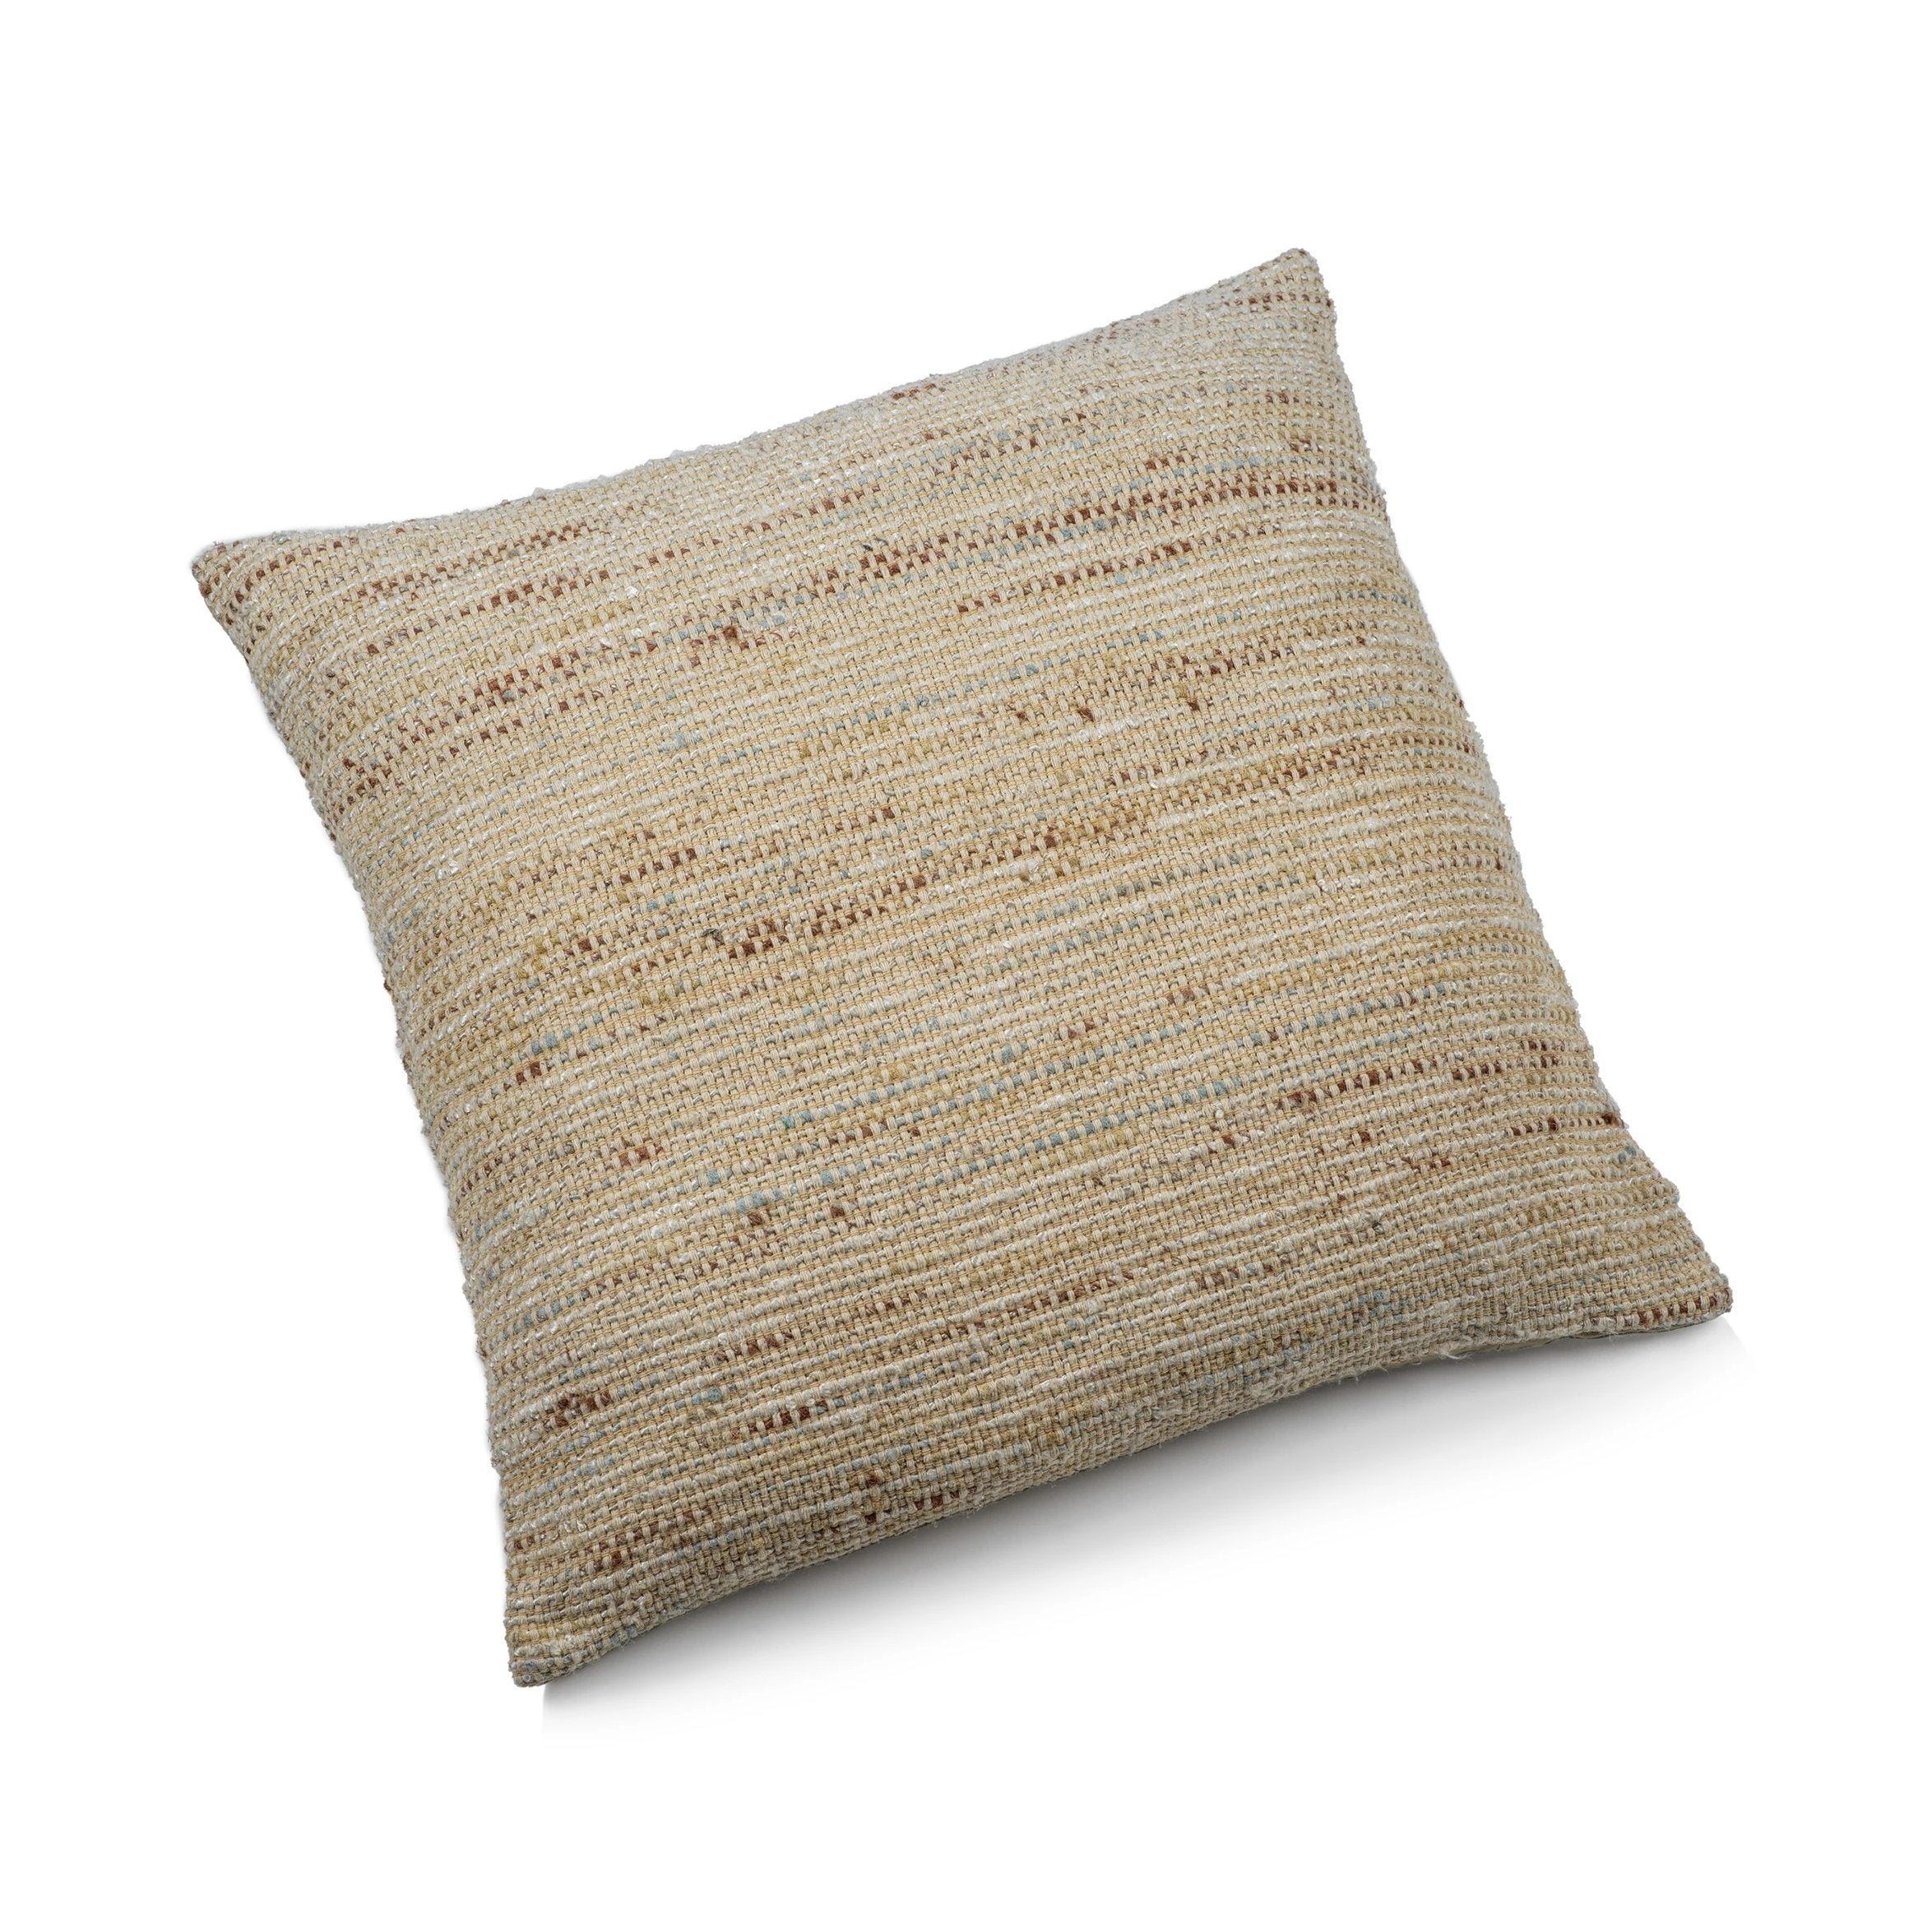 Palm Handwoven Natural Throw Pillow - CARLYLE AVENUE